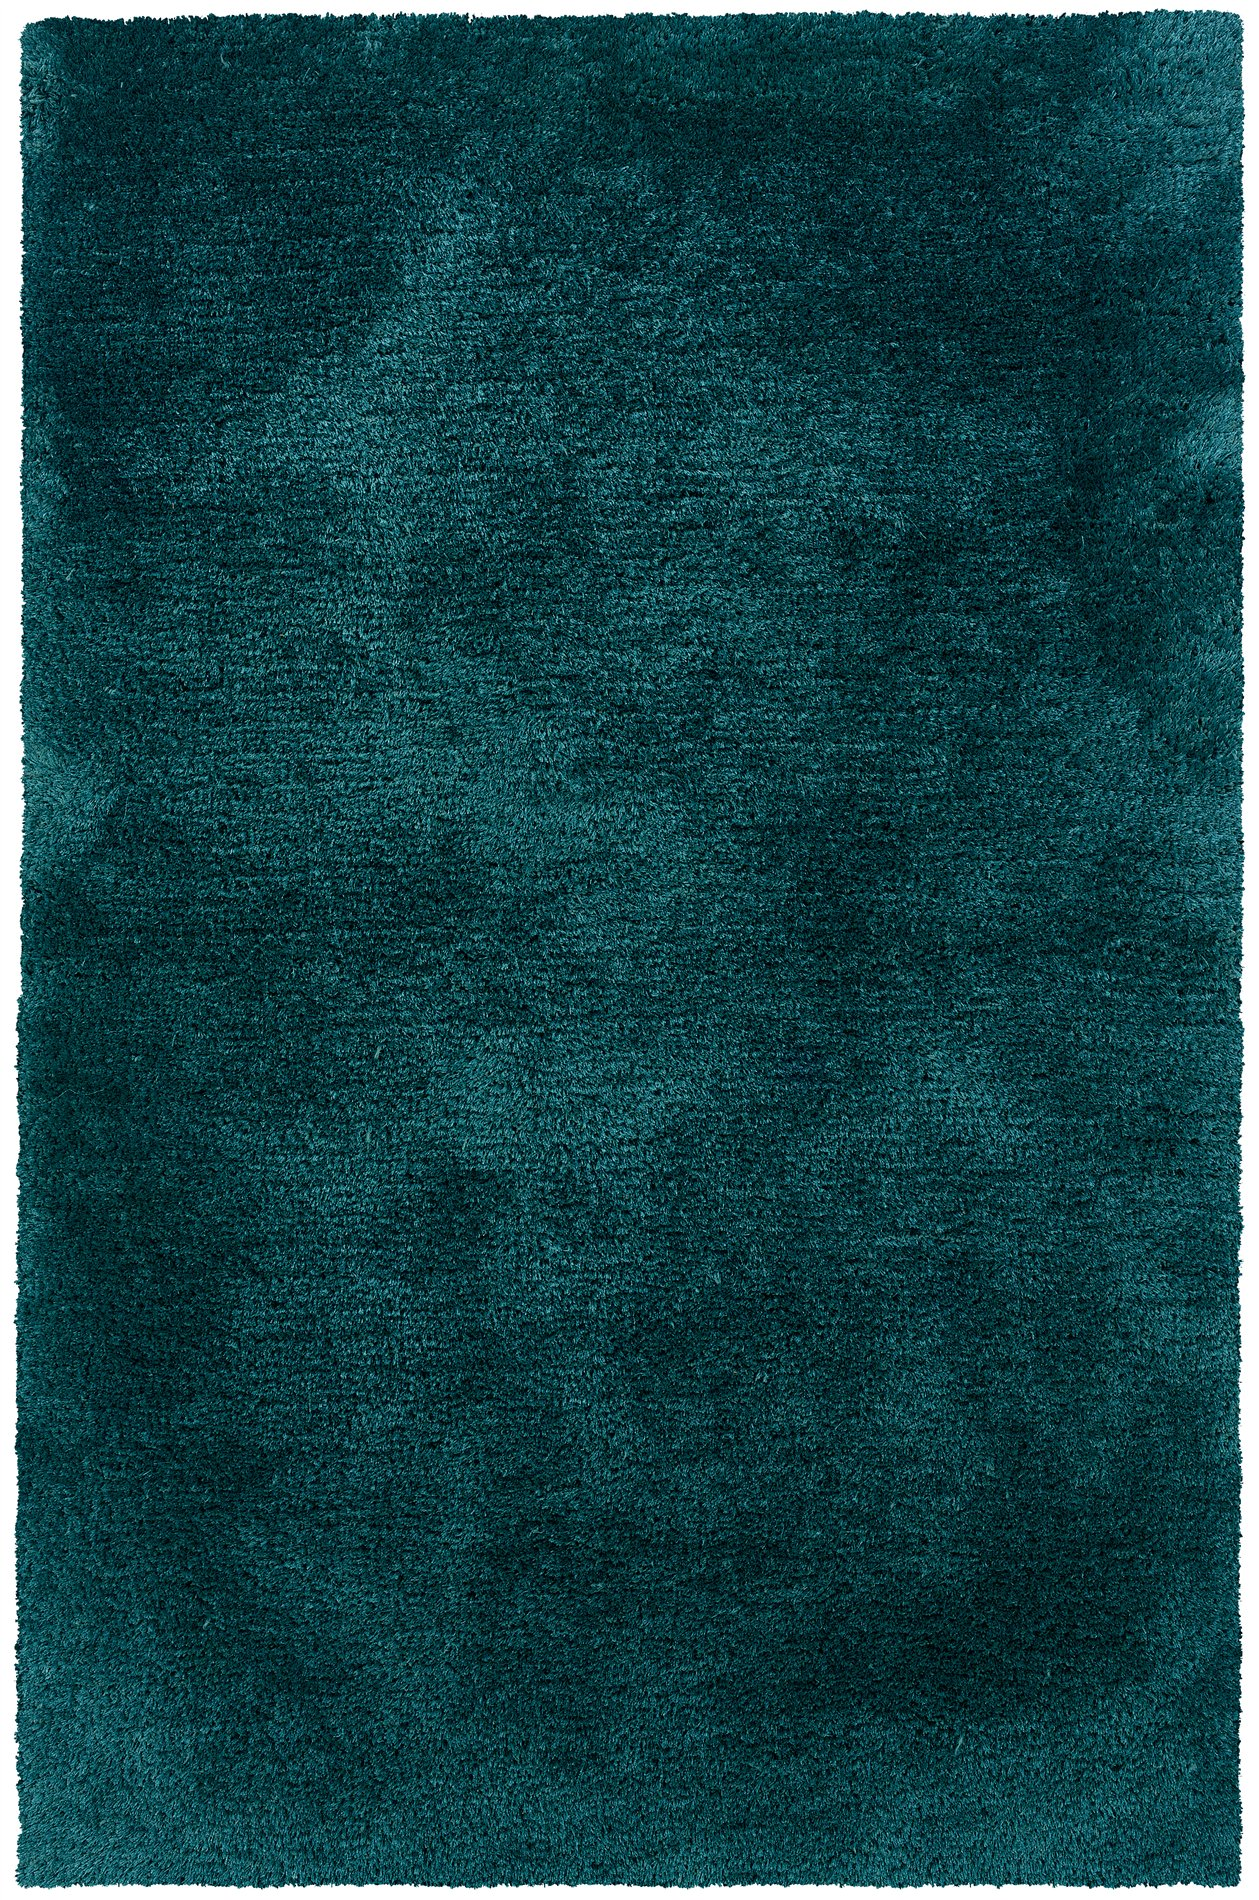 Sphinx C81104 Cosmo Teal Transitional Shag Rug Spx 81104